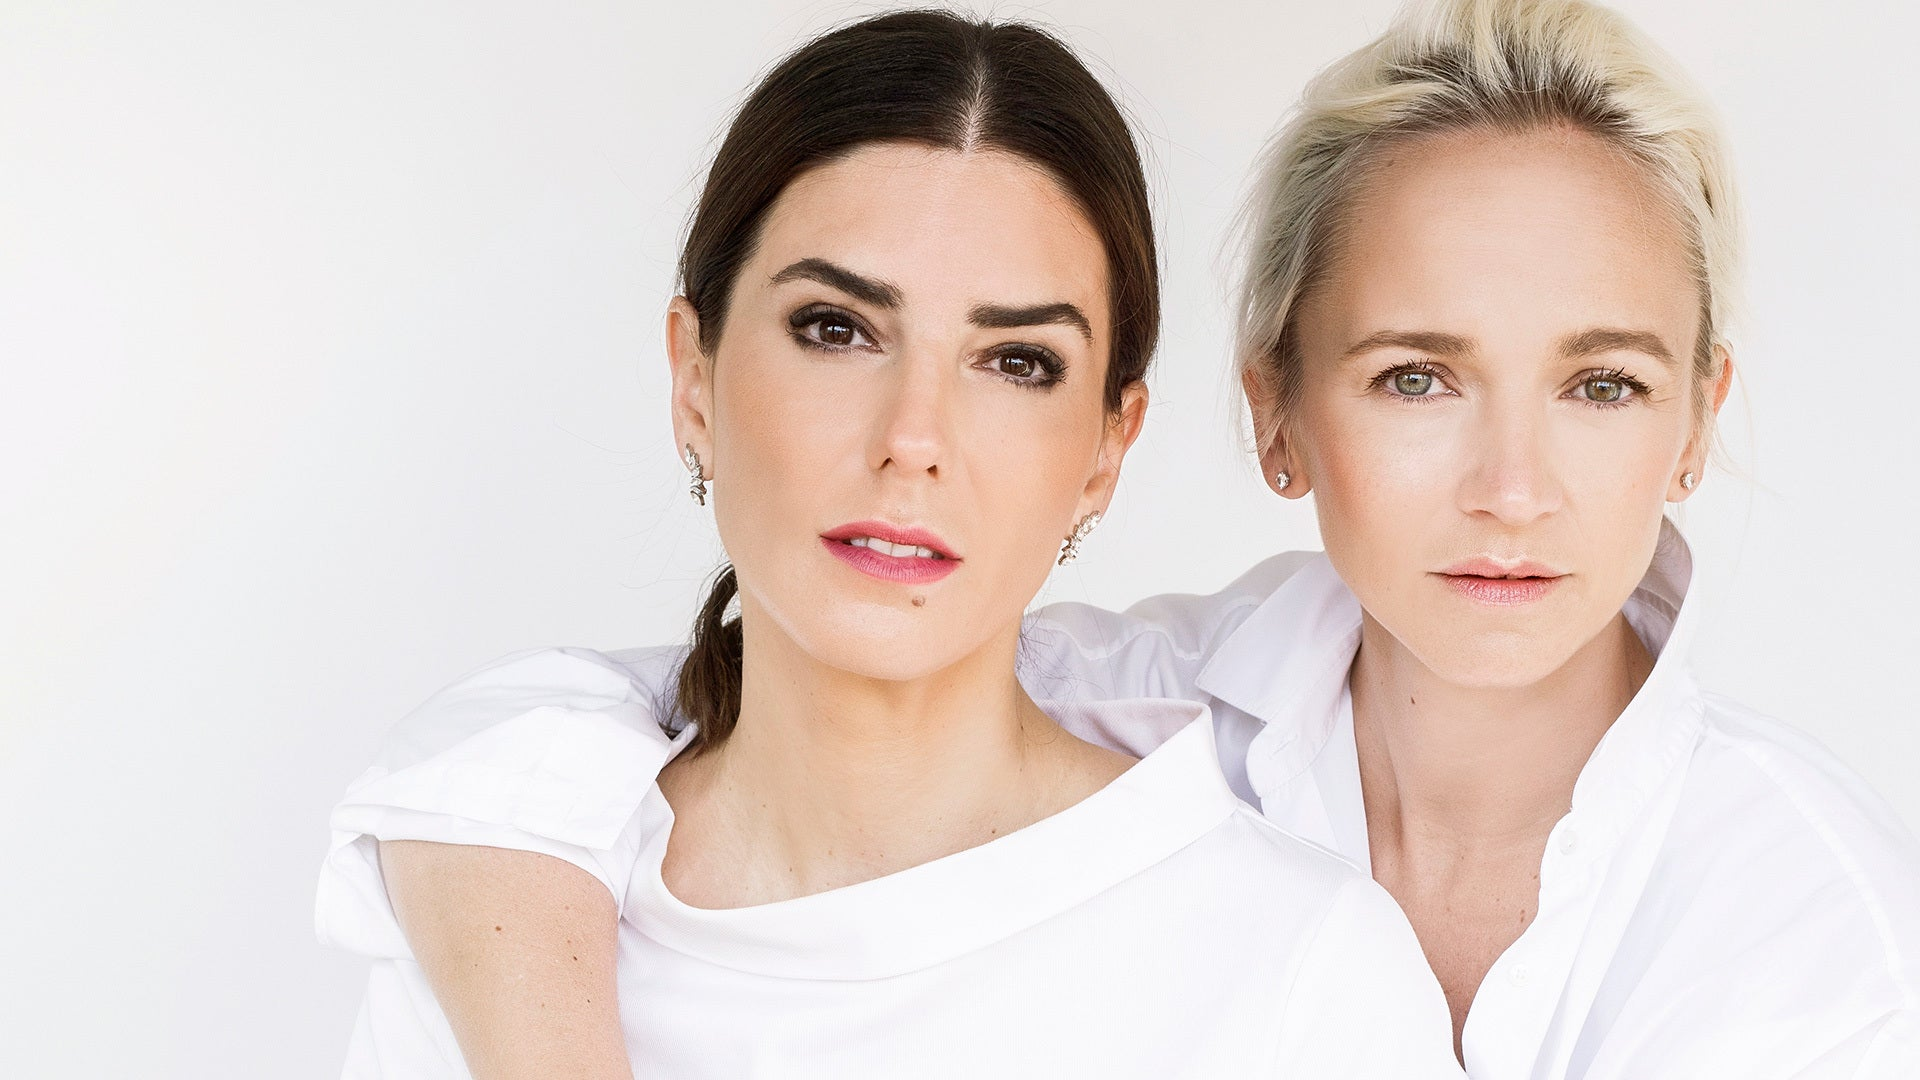 Sophie et Voilà was born from the union of two diametrically opposed and complementary women, basing her whole philosophy on that concept. We are better together.